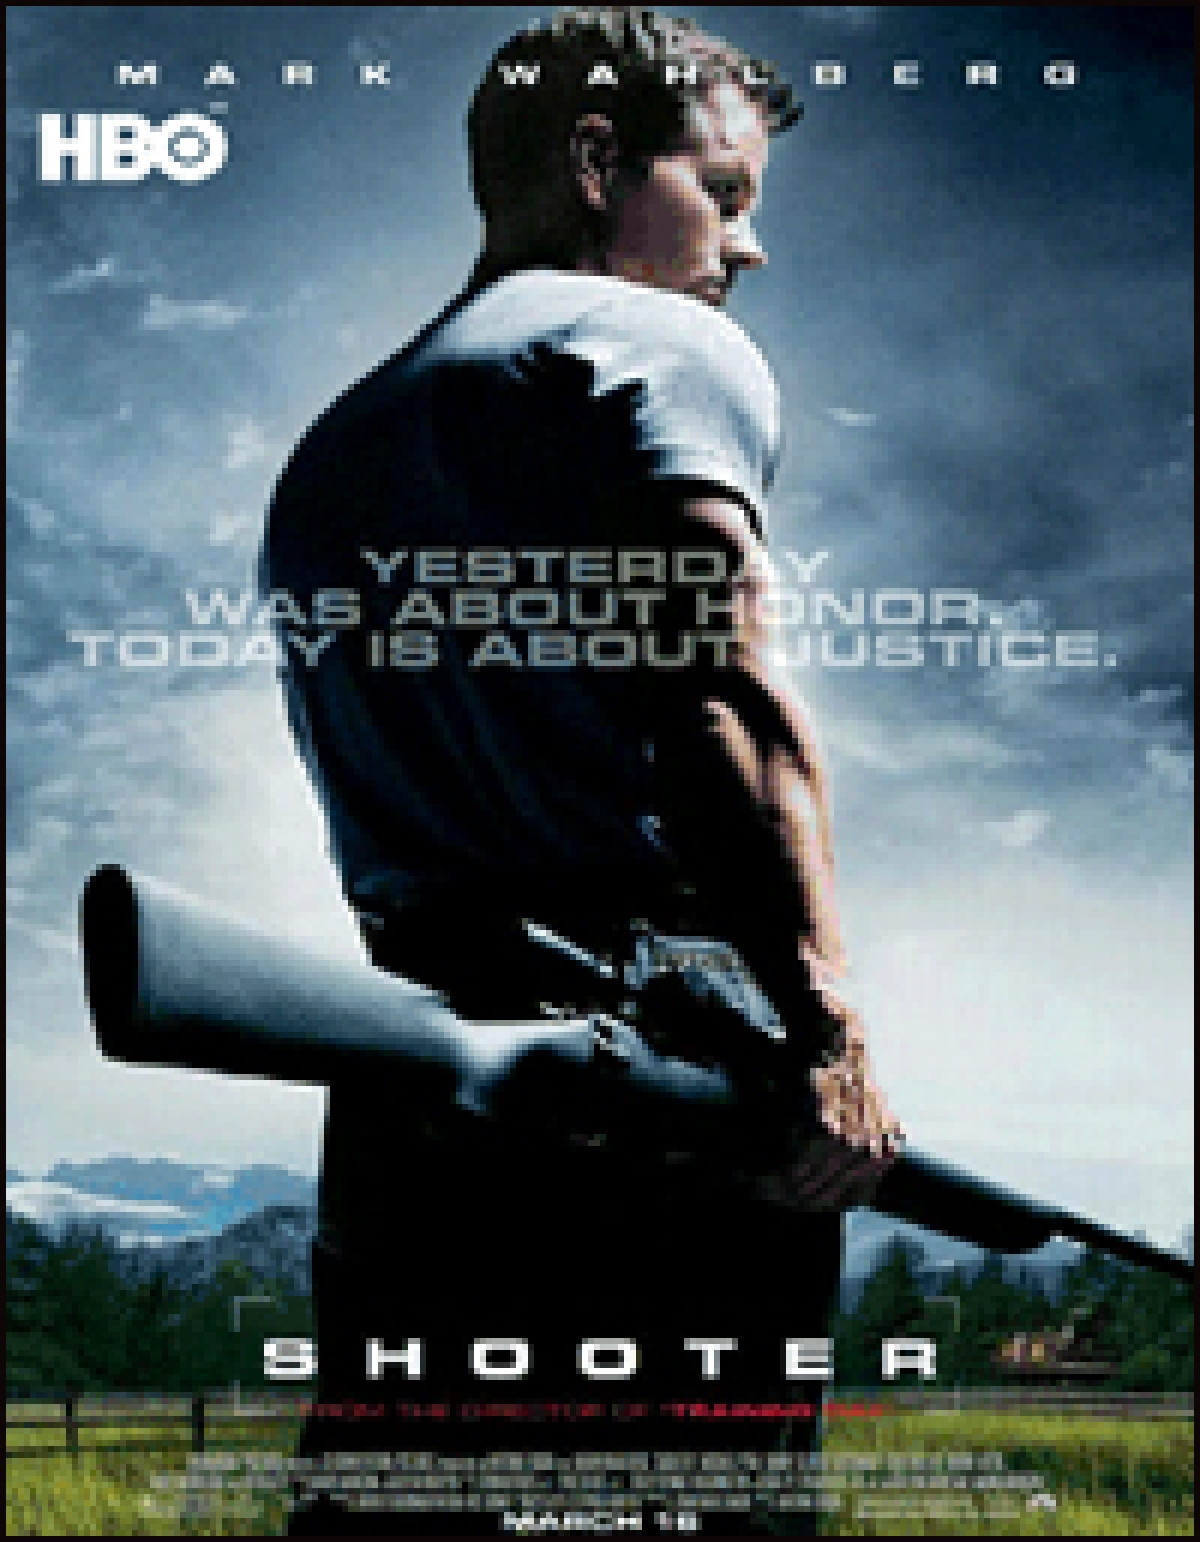 Don't forget to catch the TV premiere of the action adventure film 'Shooter' on HBO